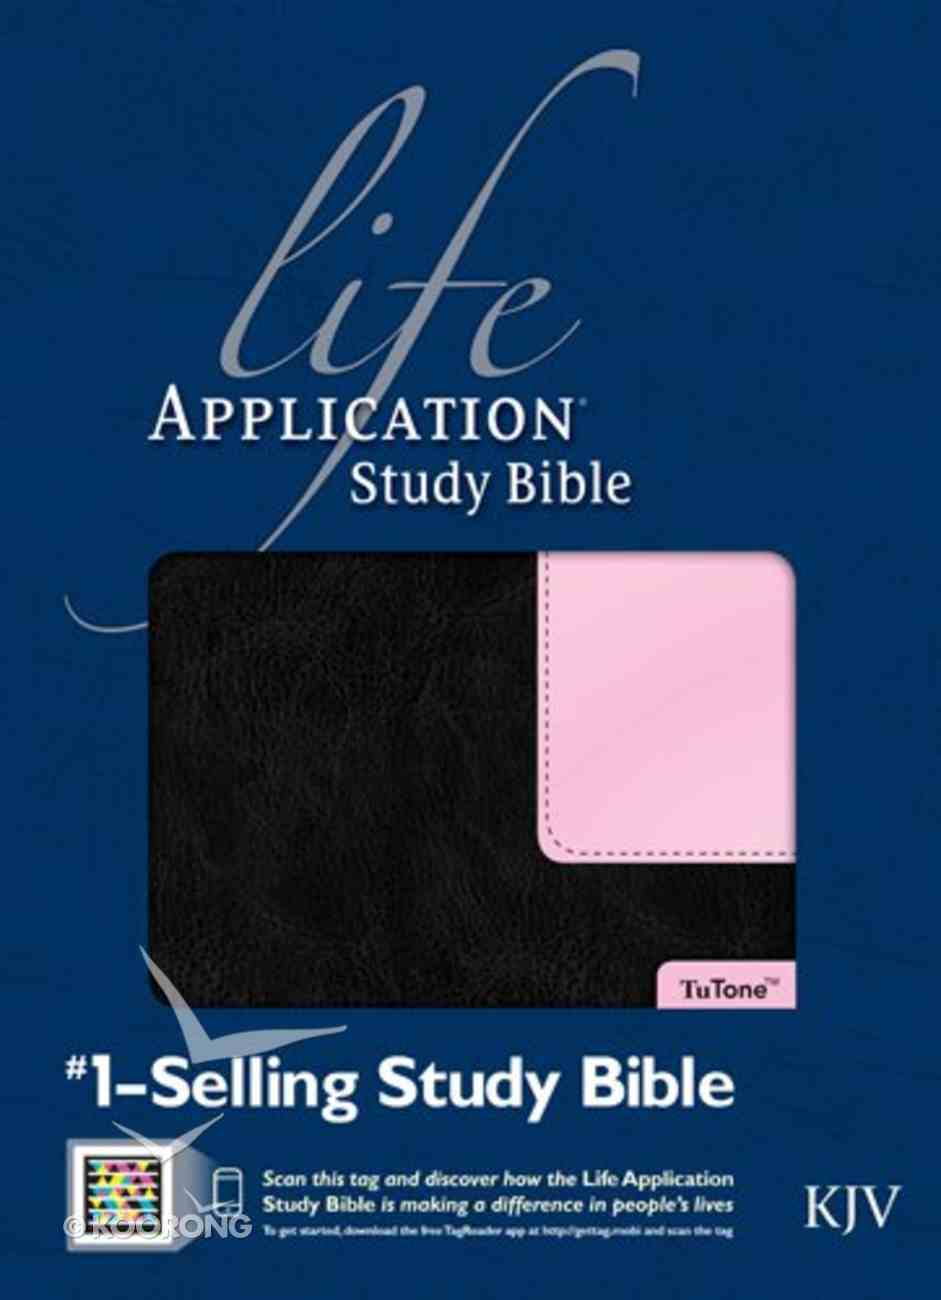 KJV Life Application Study Bible Black/Patent Leather Pink (Red Letter Edition) Imitation Leather